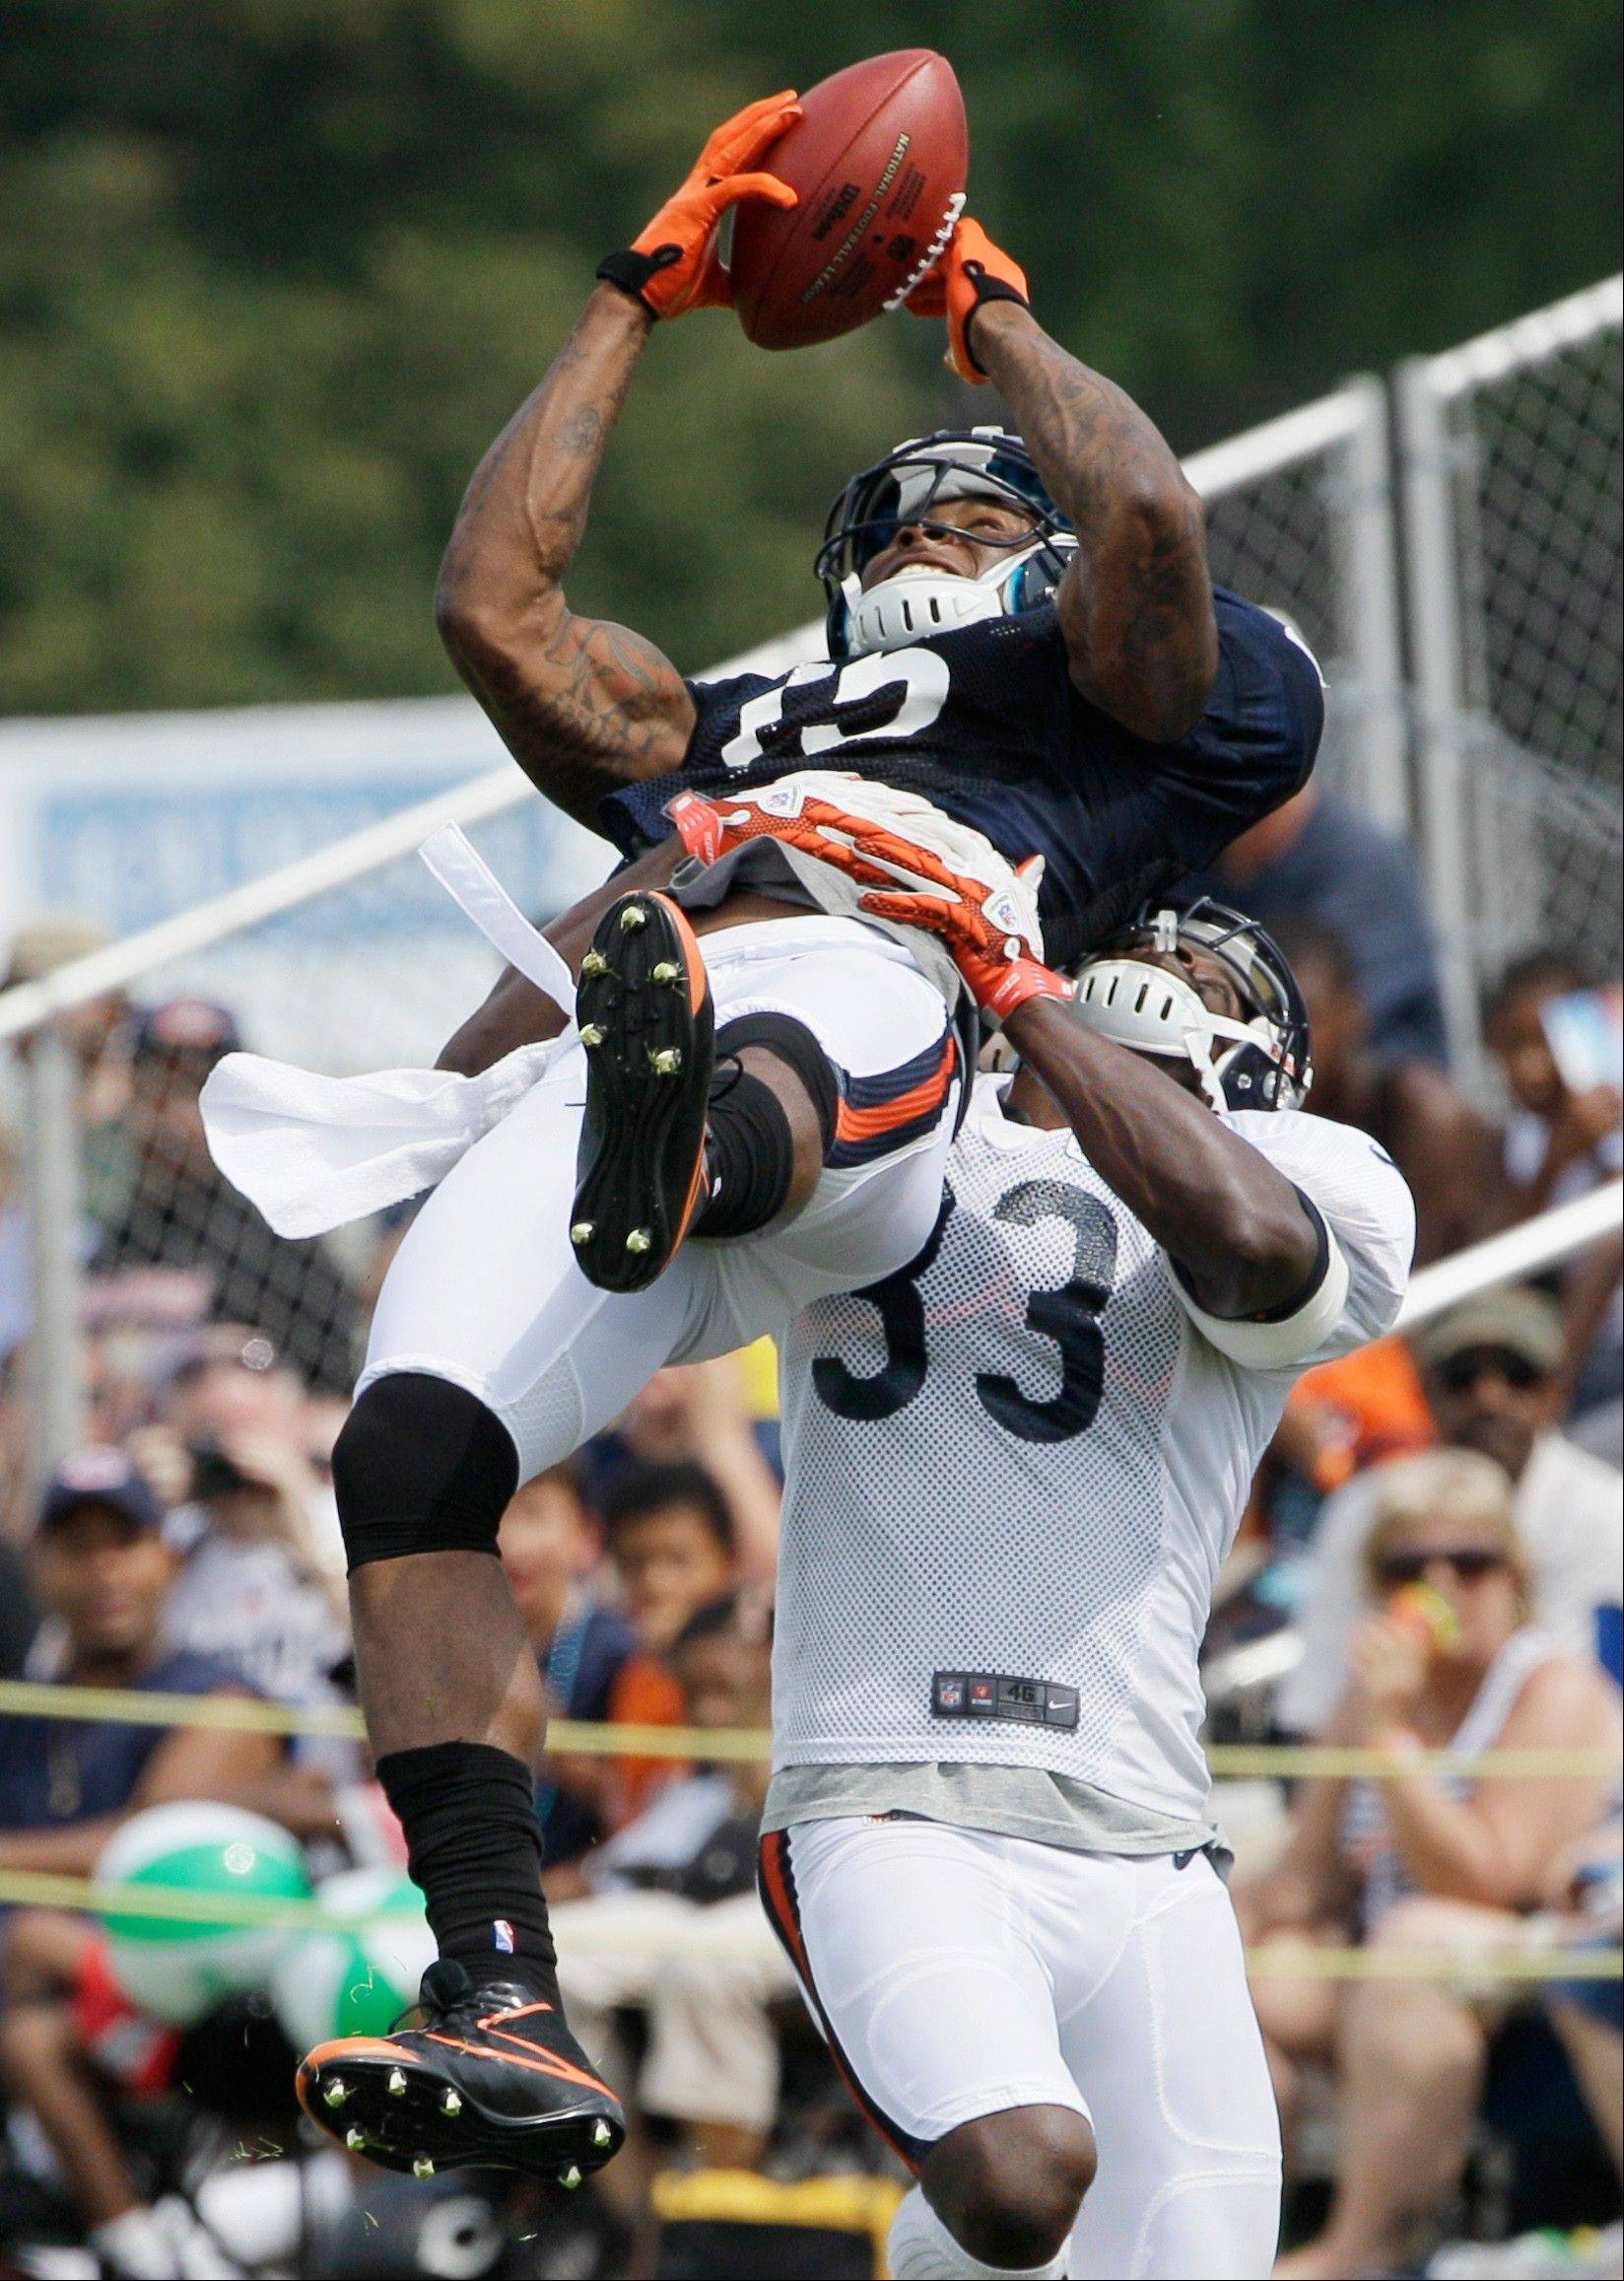 Chicago Bears wide receiver Brandon Marshall, top, catches a ball against cornerback Charles Tillman (33) during NFL football training camp at Olivet Nazarene University in Bourbonnais, Ill., Sunday, July 29, 2012. (AP Photo/Nam Y. Huh)